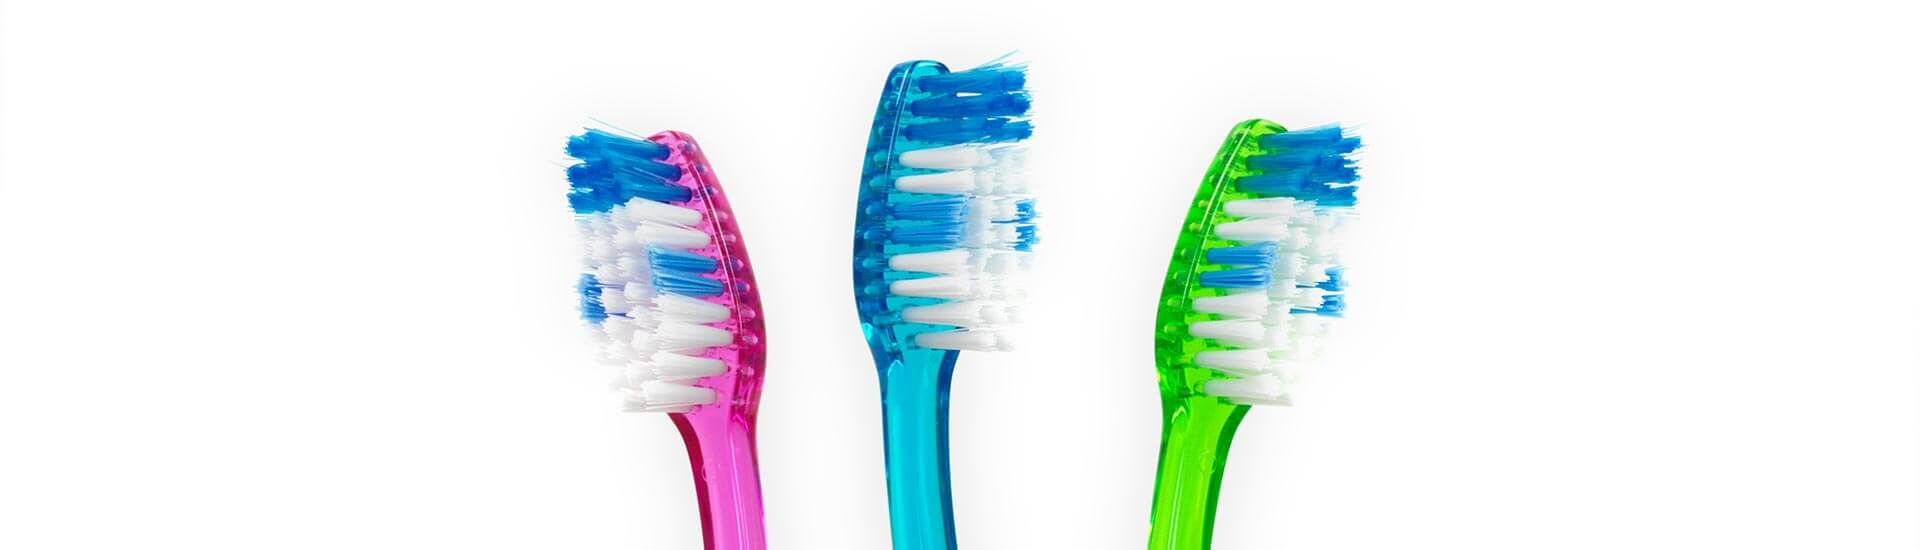 Giving Your Toothbrush some TLC